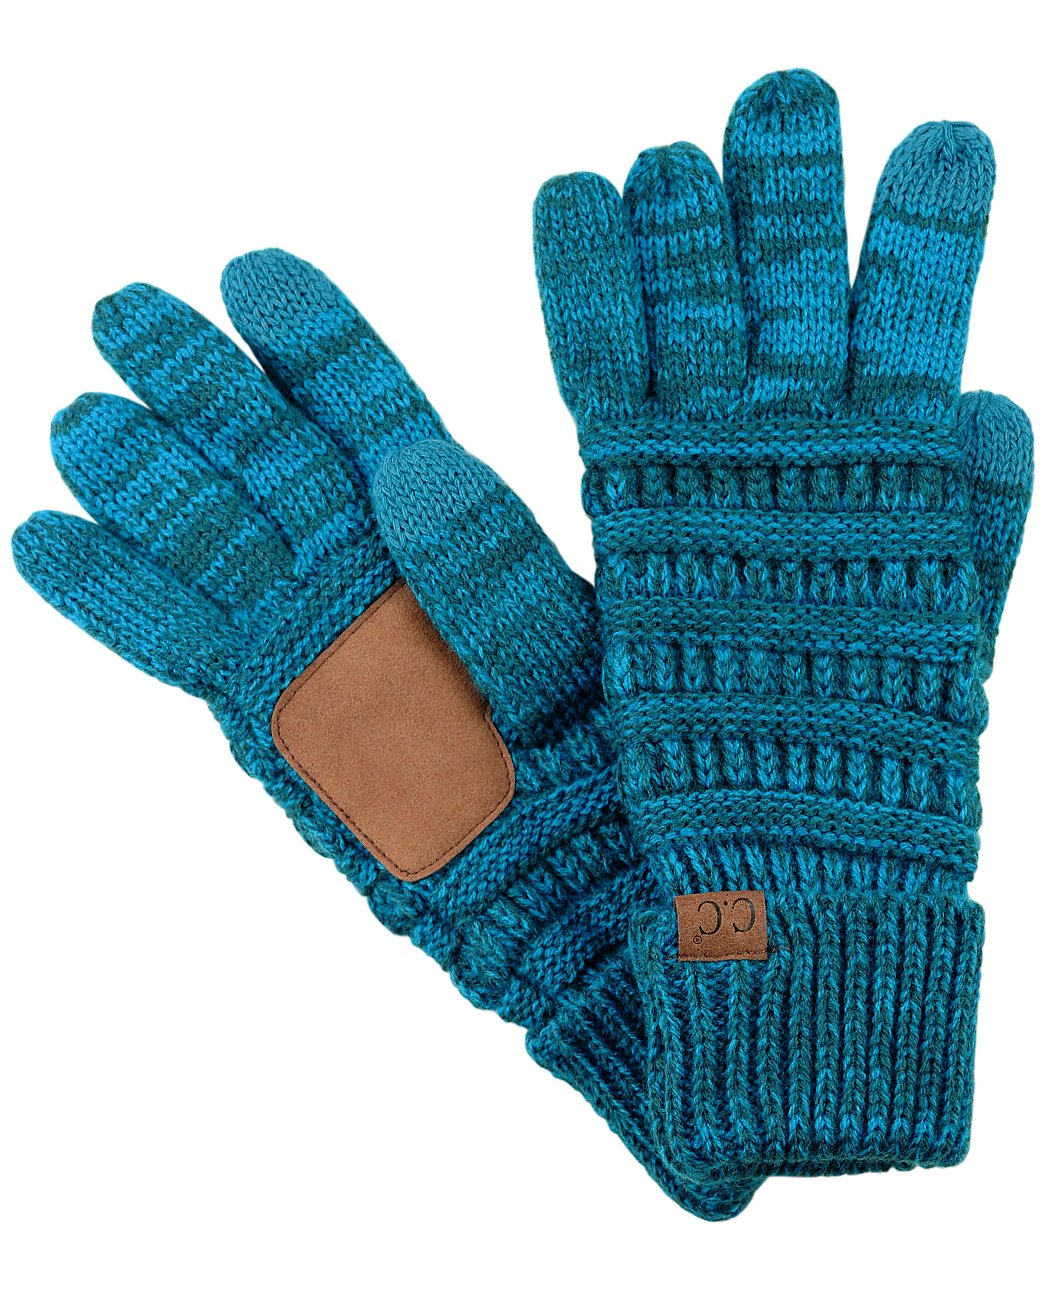 C.C Unisex Cable Knit Winter Warm Anti-Slip Touchscreen Texting Gloves, Blue/Teal